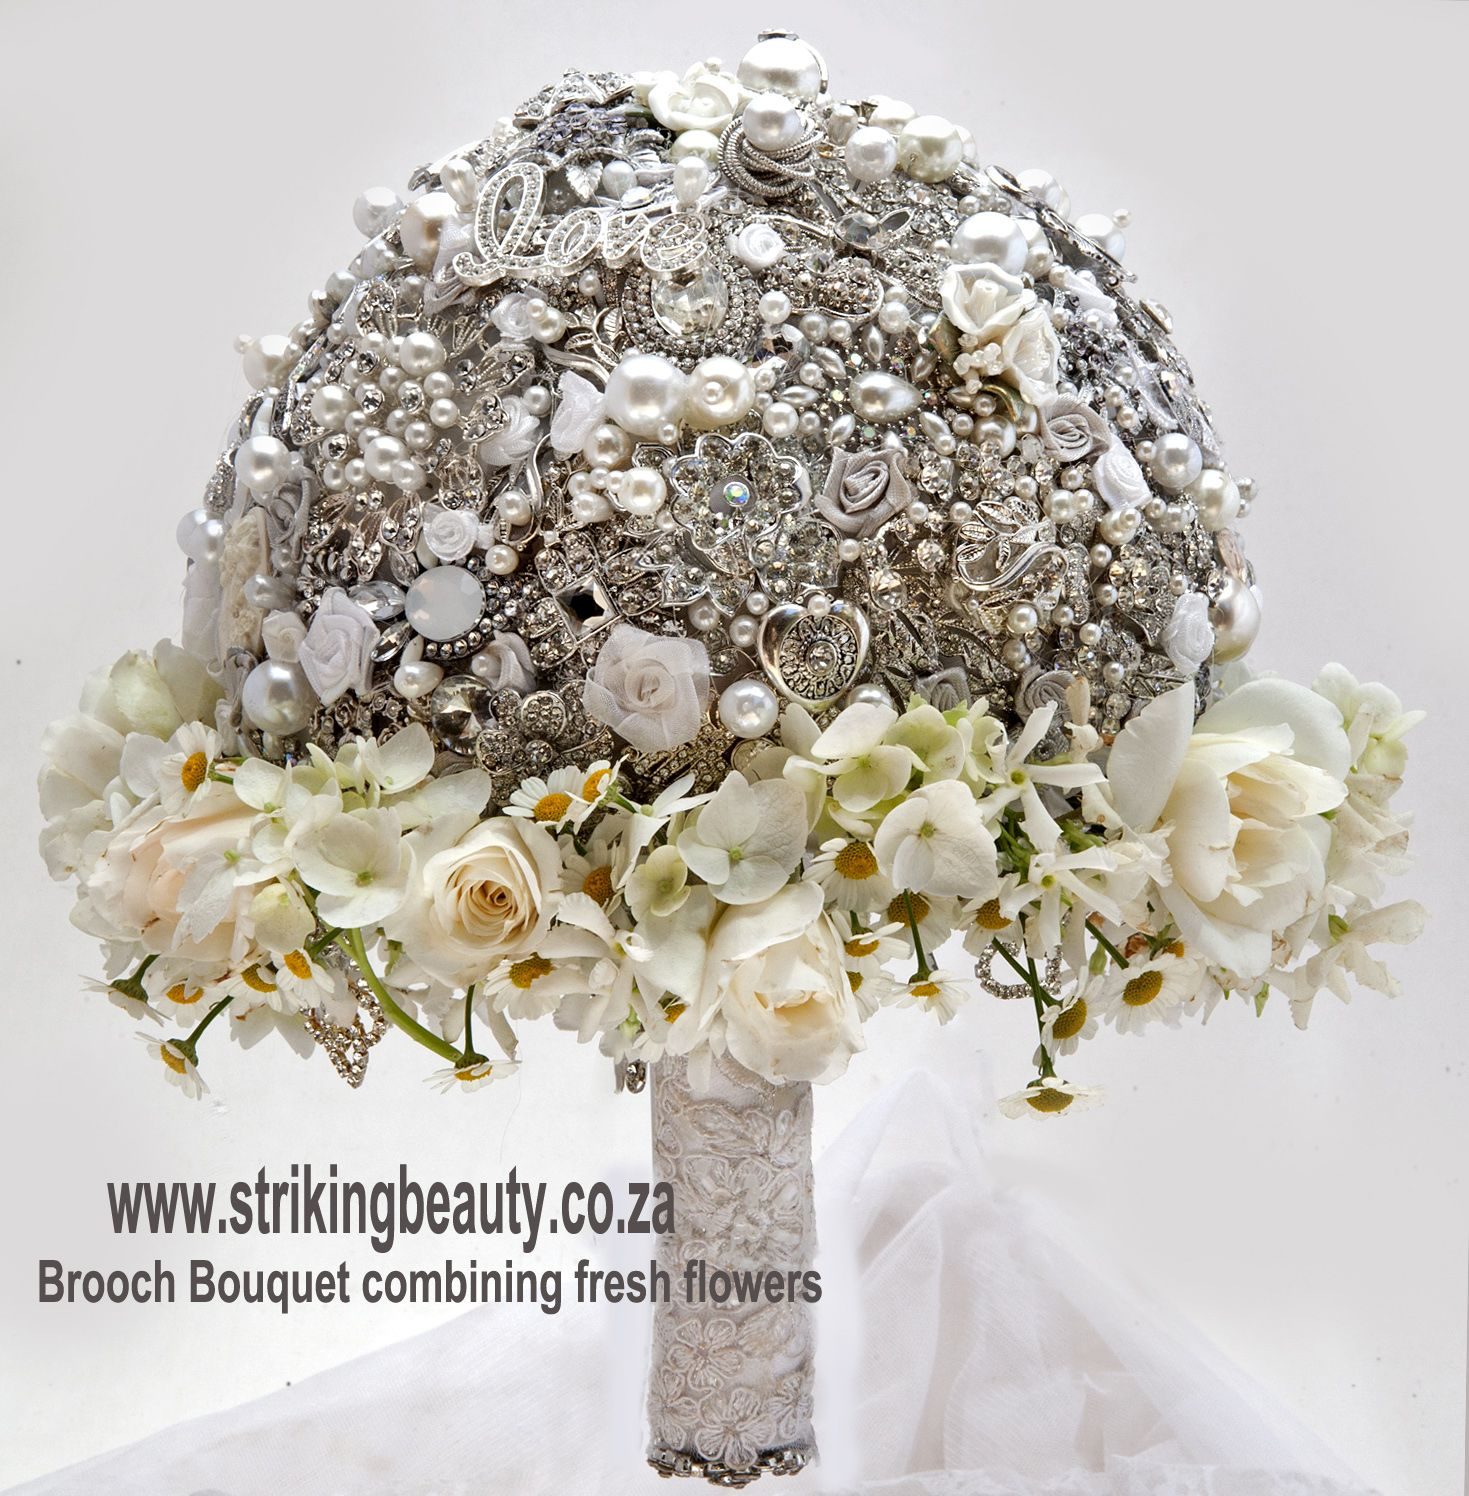 Silver And White Brooch Bouquet With Fresh Flowers Added Elegant